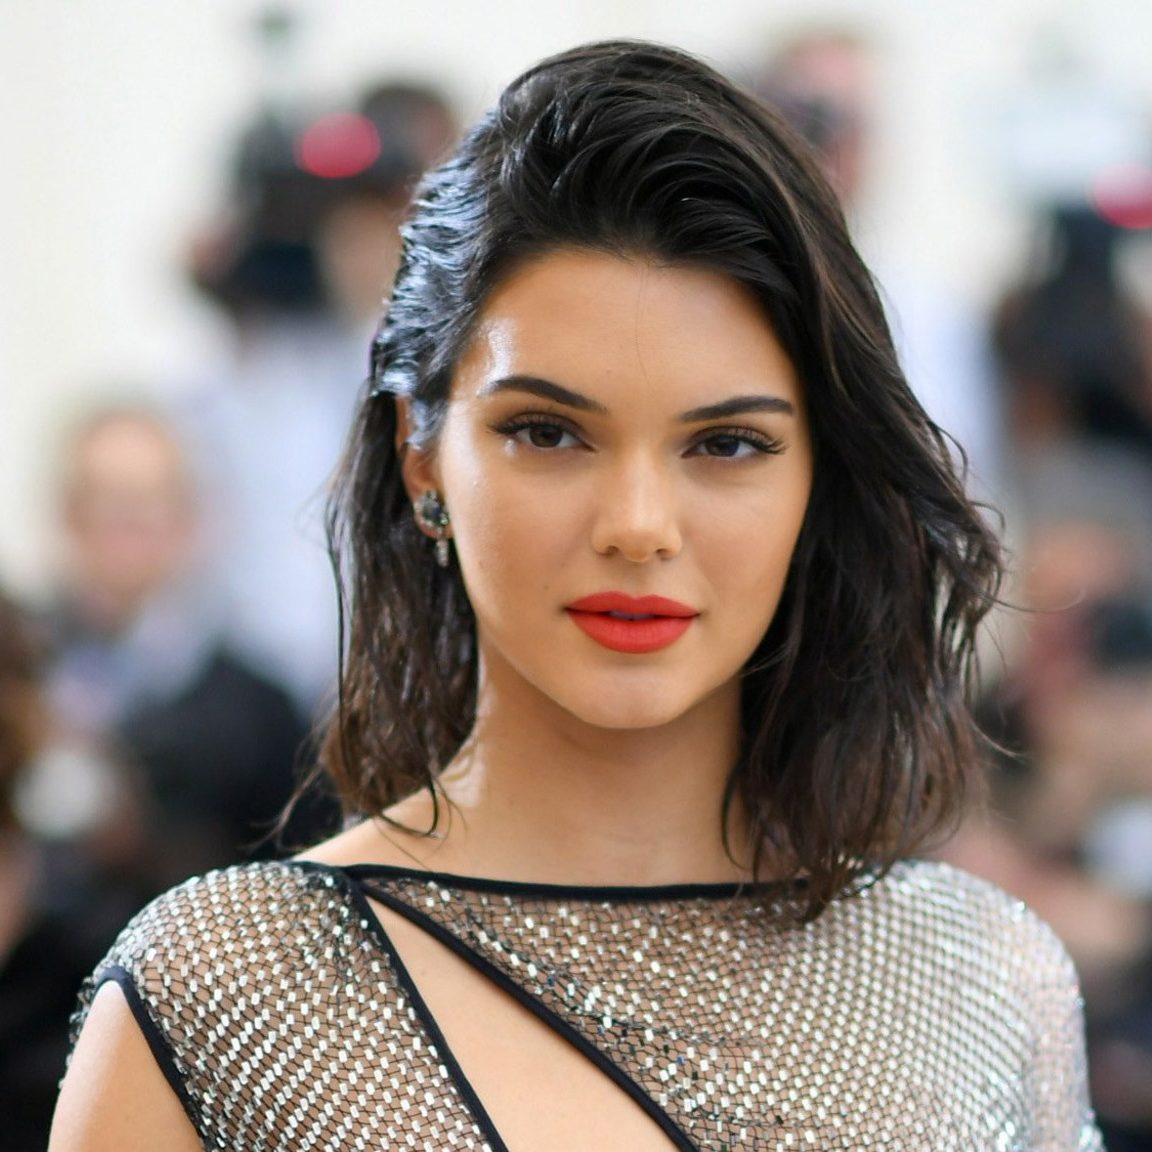 k 1 e1559031198427 10 Things You Never Knew About The Kardashians